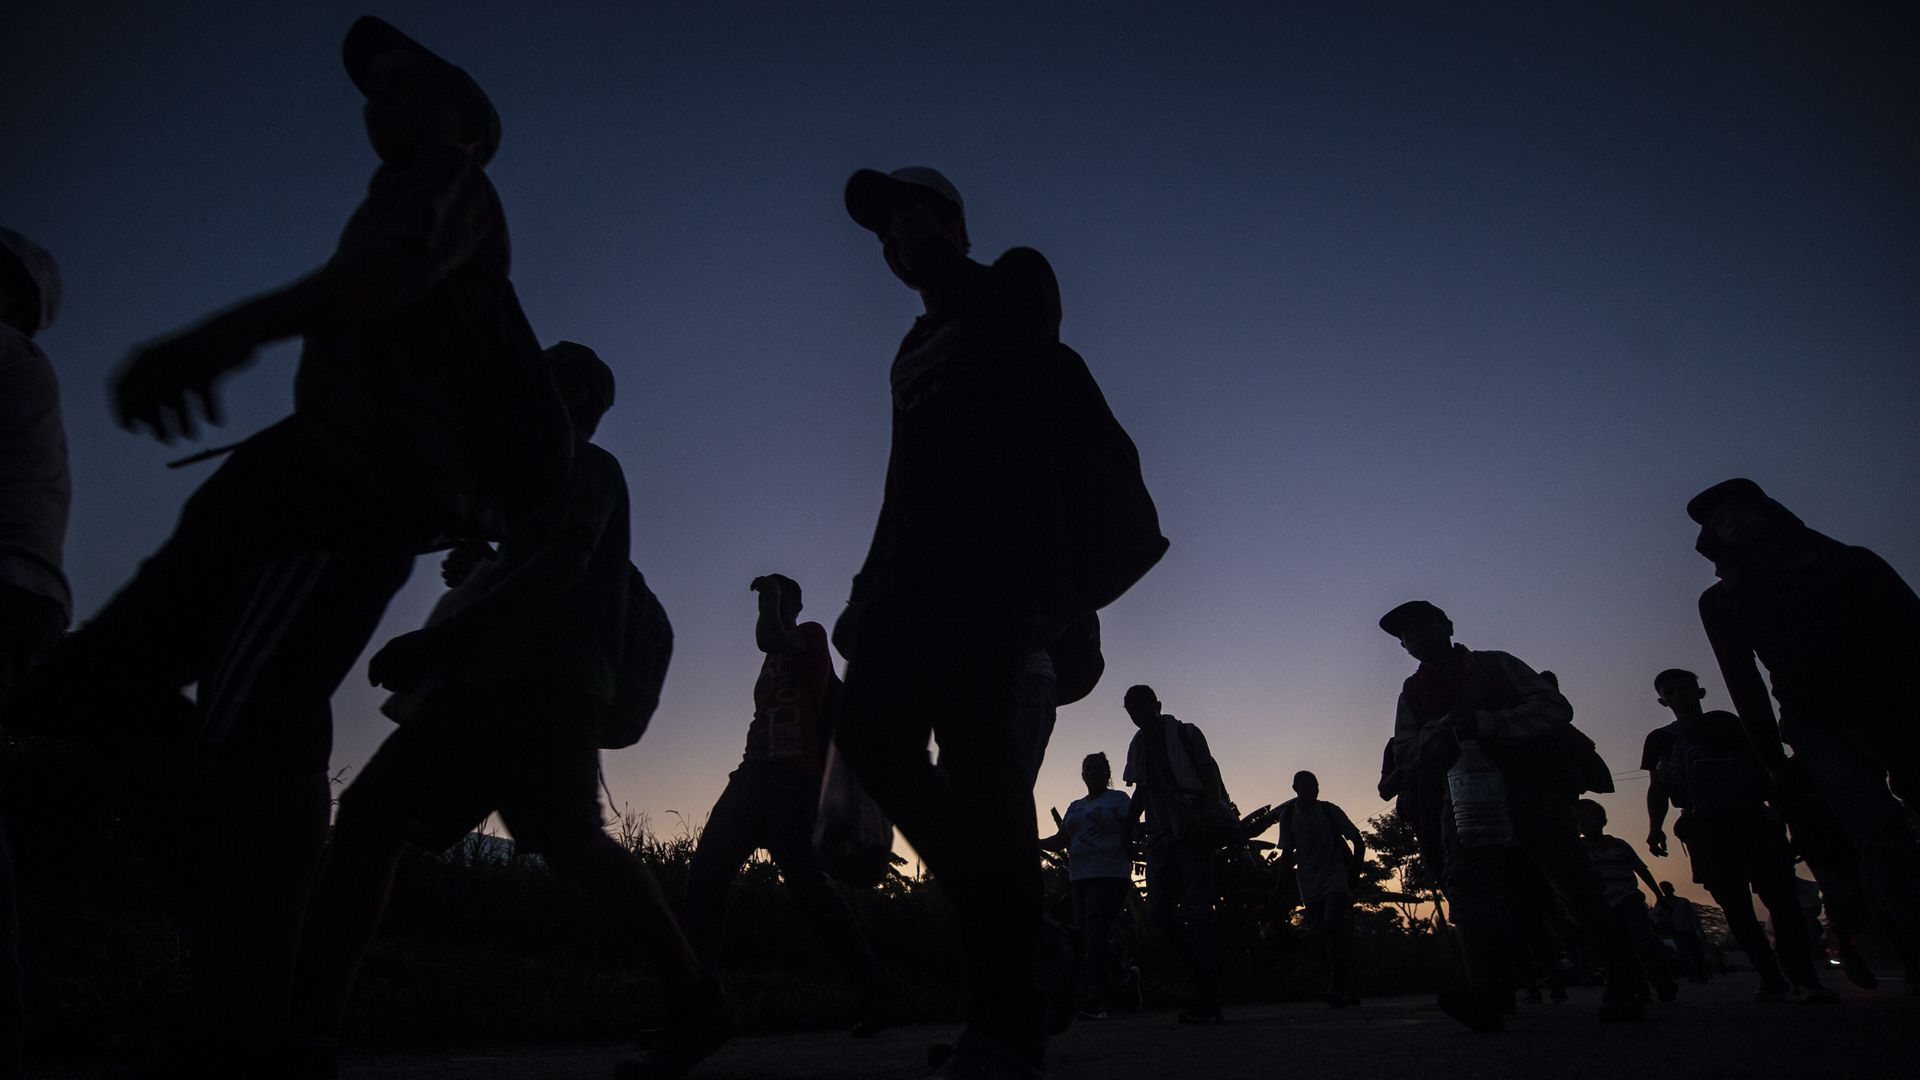 Silhouettes of people marching in a caravan before a pink and blue dark sky.